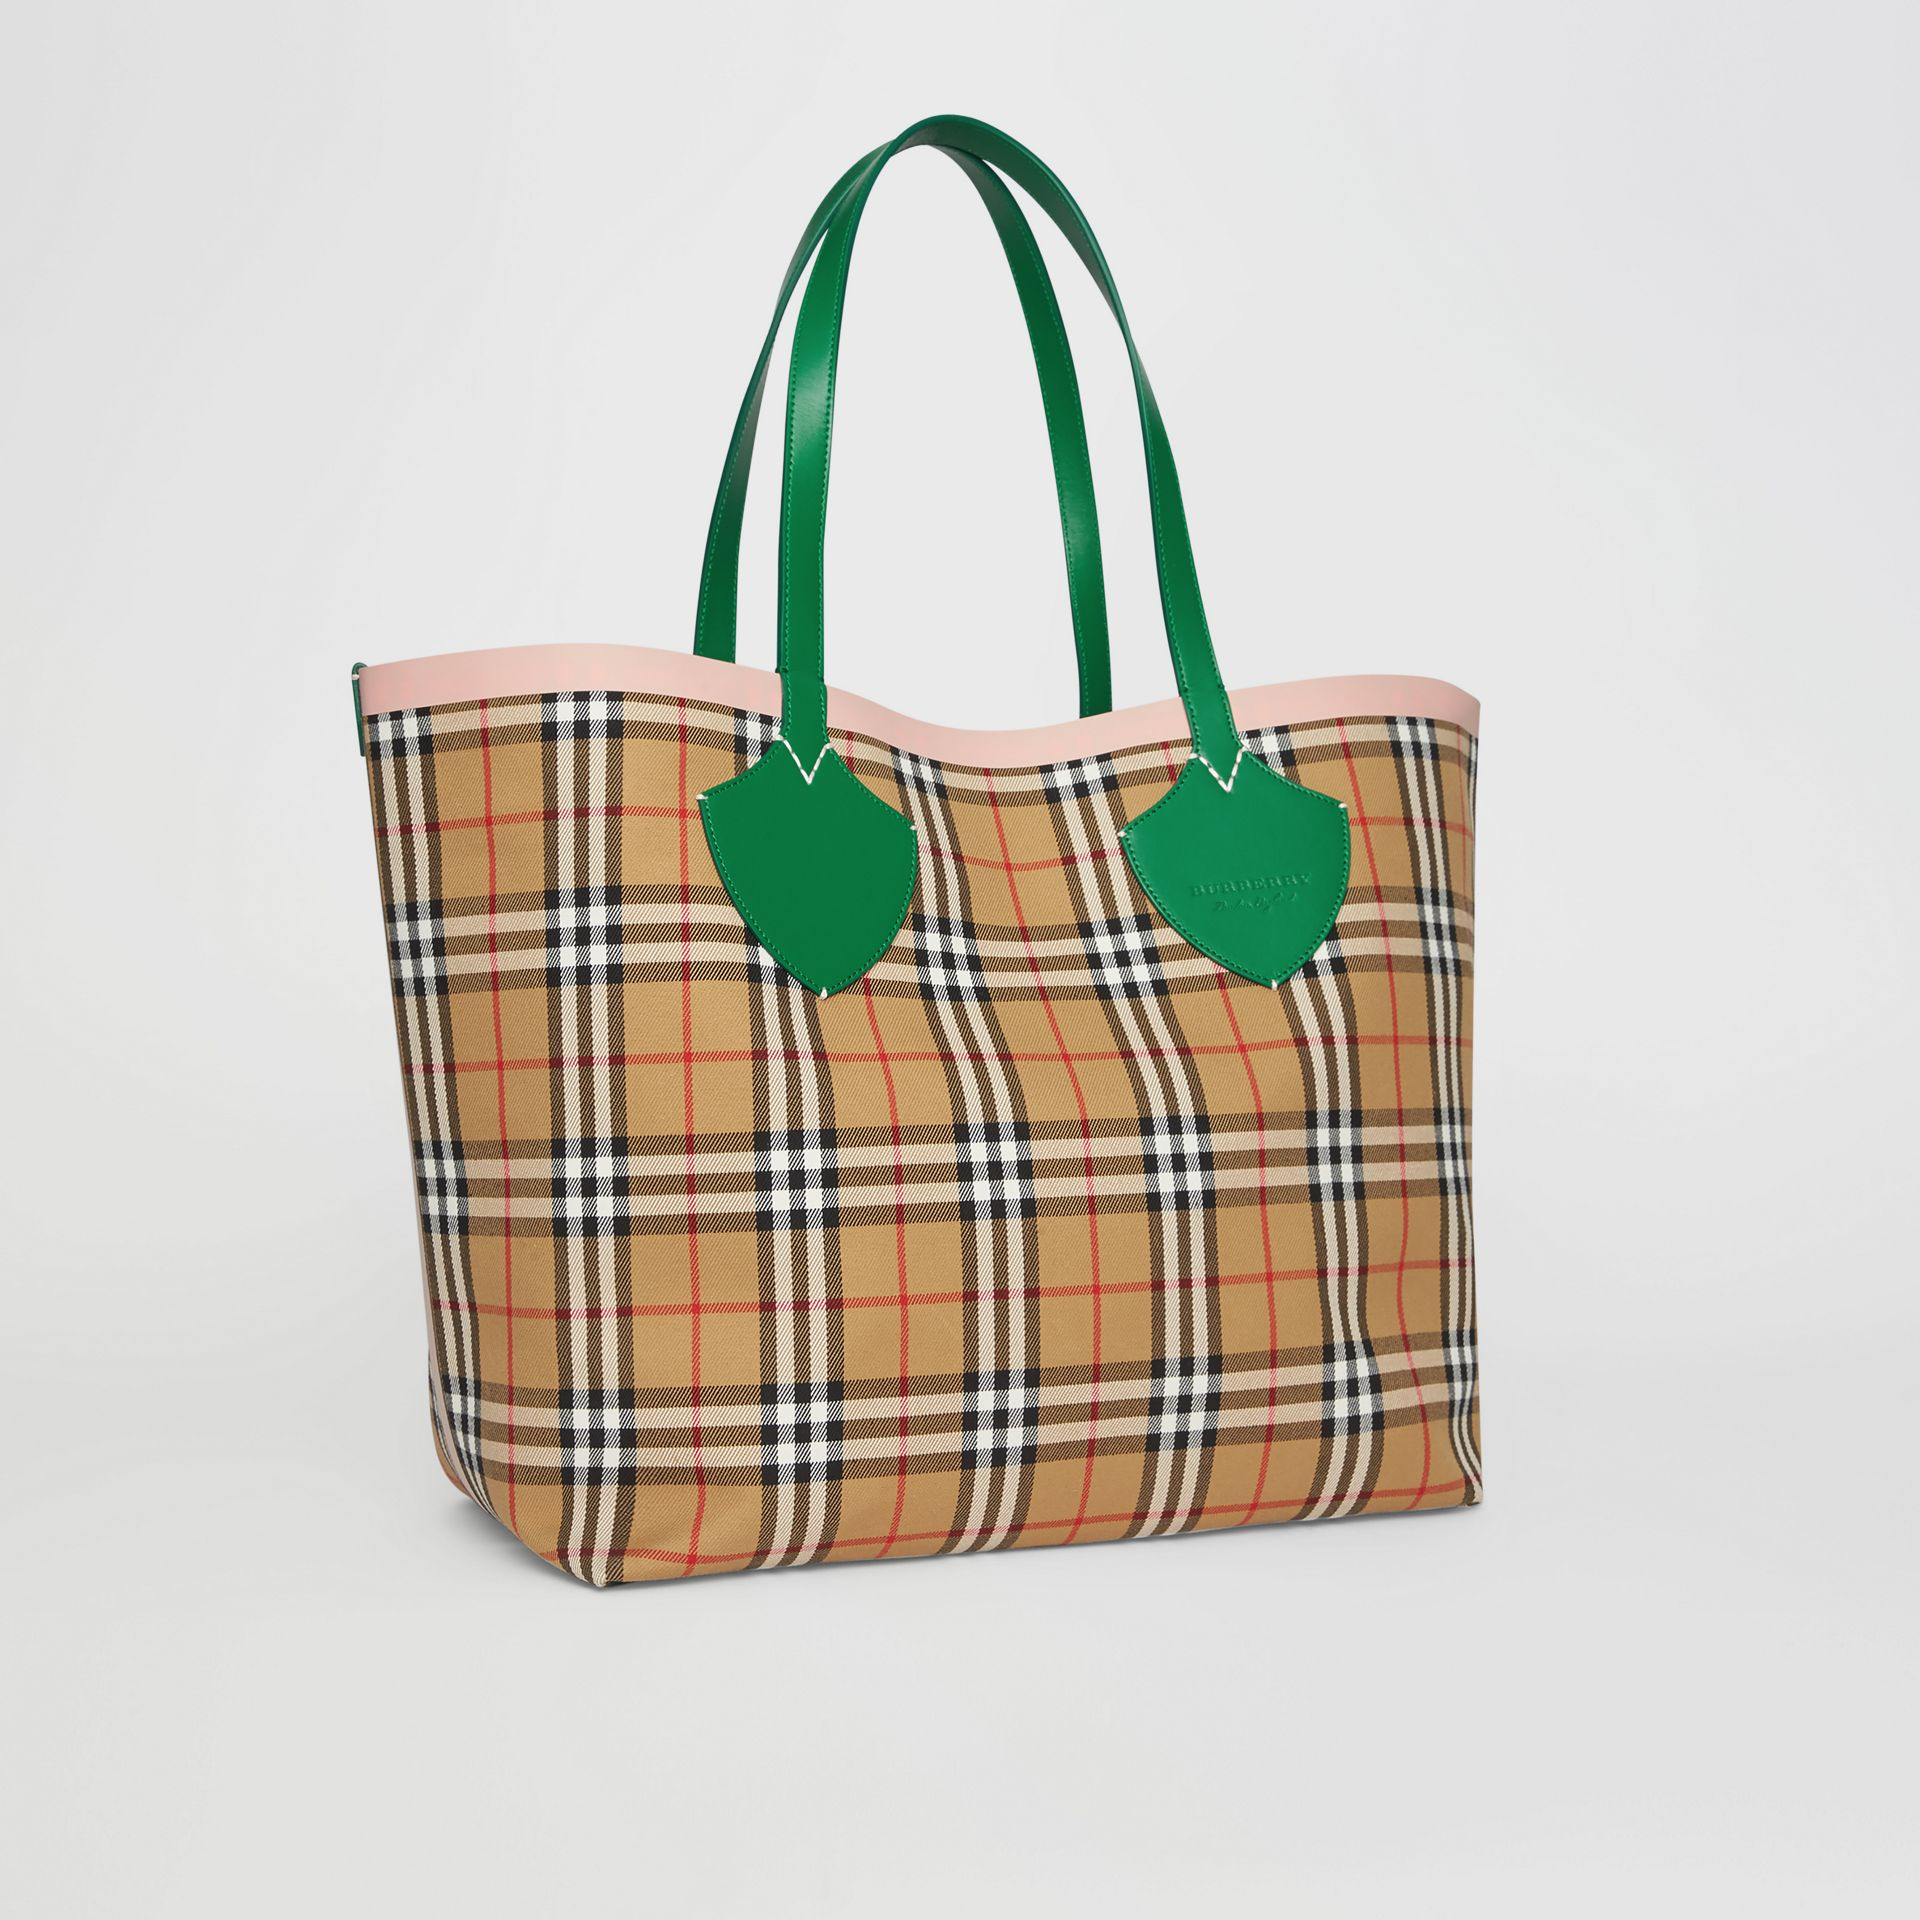 Sac tote The Giant réversible à motif Vintage check (Vert Sombre/abricot Rose) - Femme | Burberry Canada - photo de la galerie 8